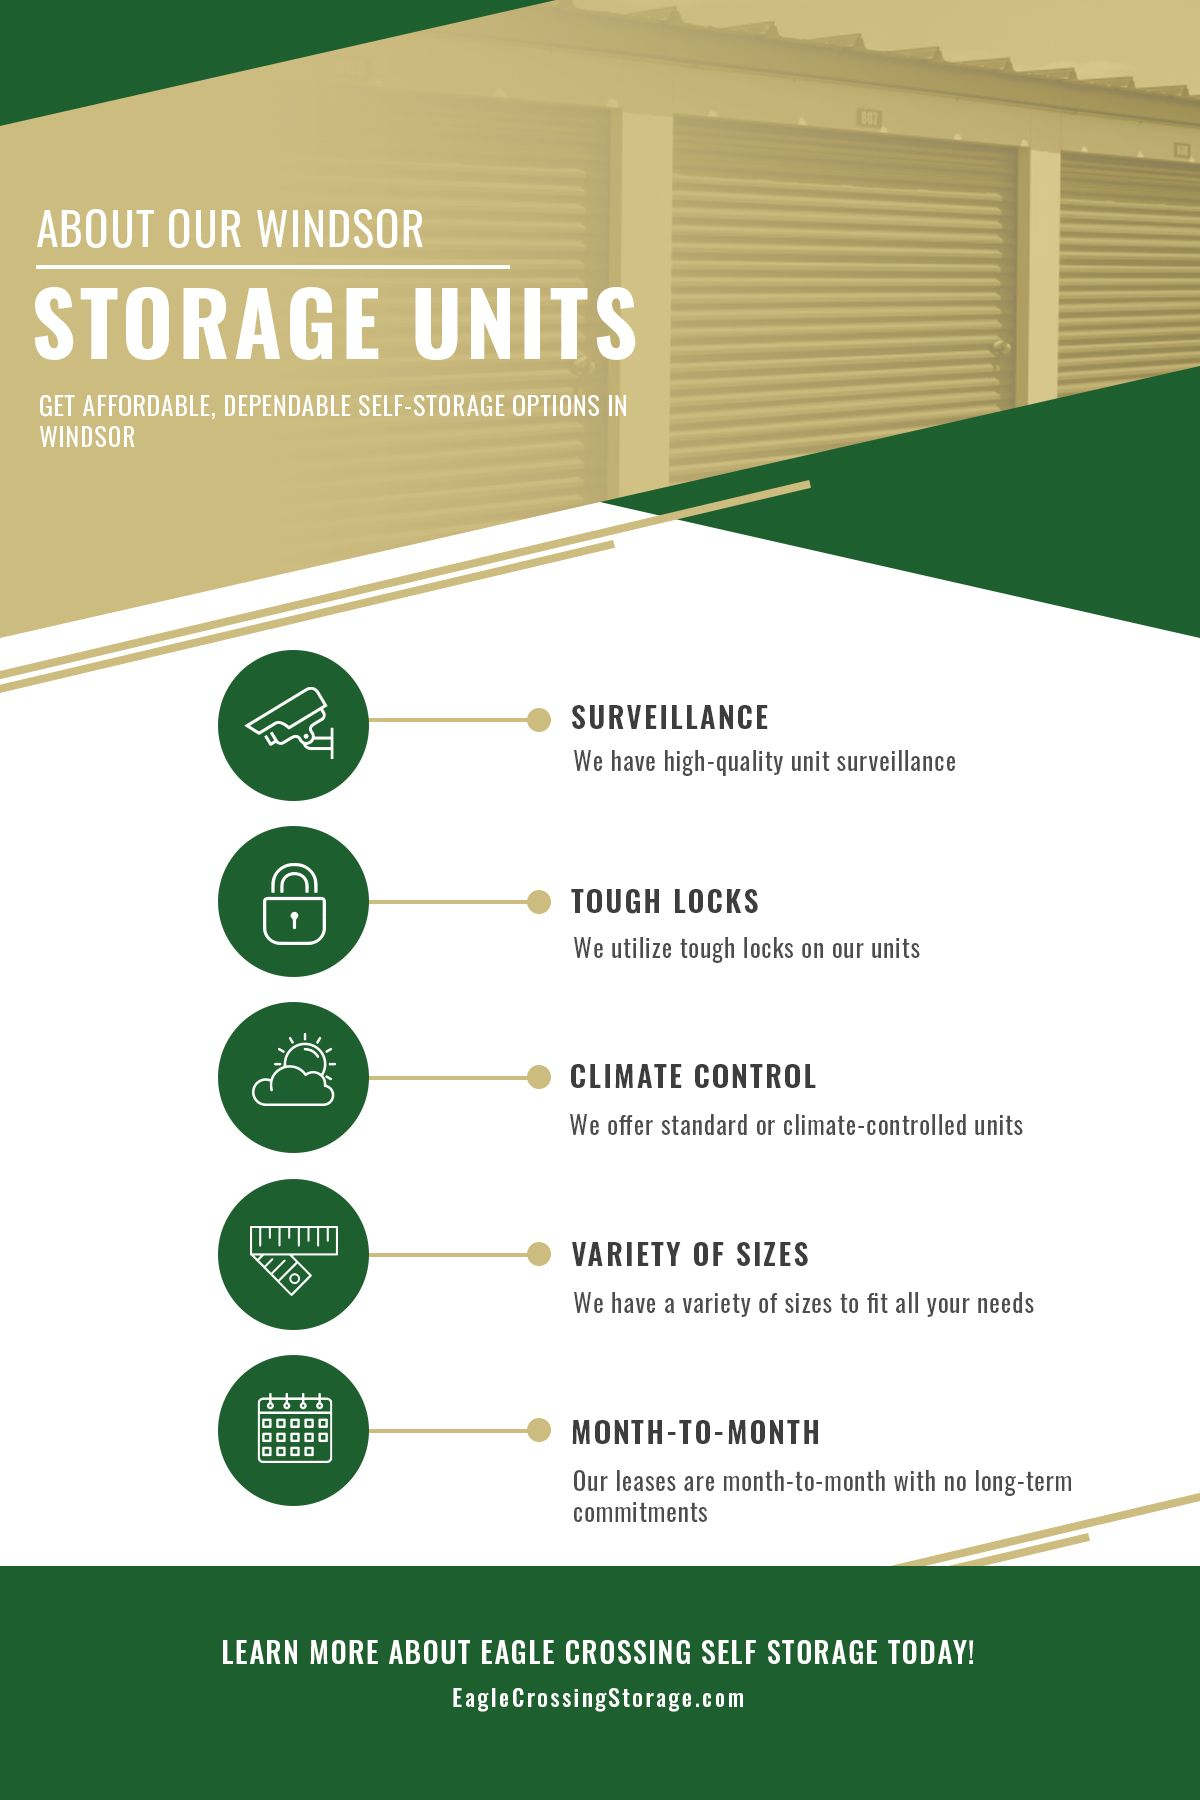 About-Our-Windsor-Storage-Units-Infographic-6075b4e01de74.jpg